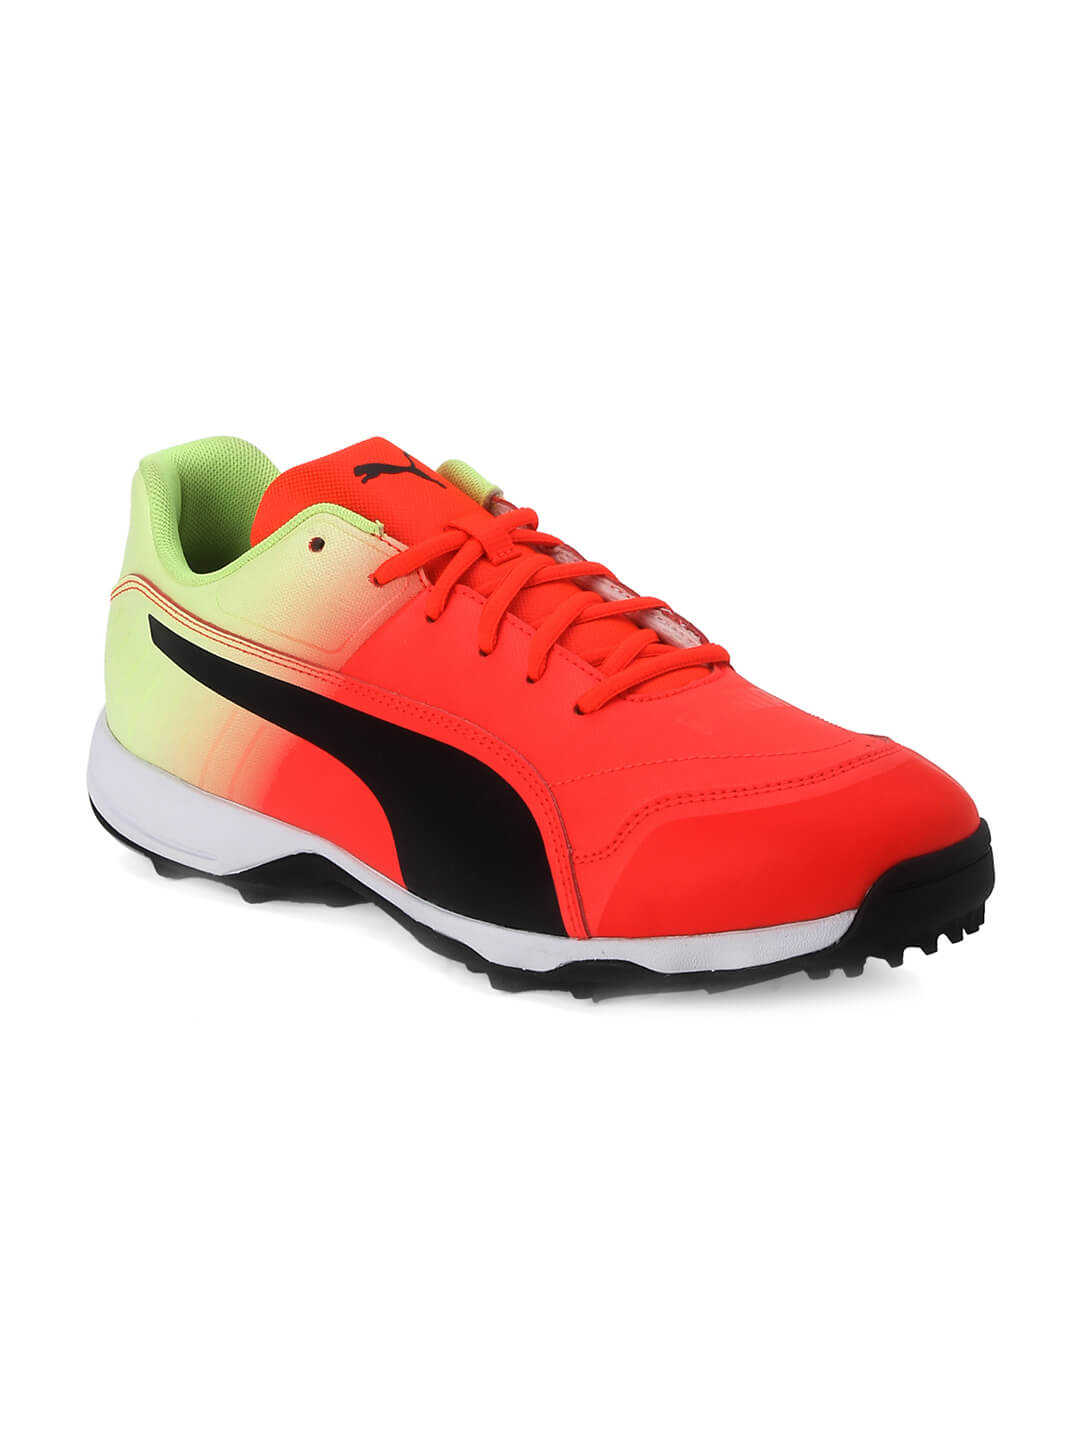 Buy one8 x PUMA Men Red Cricket Shoes